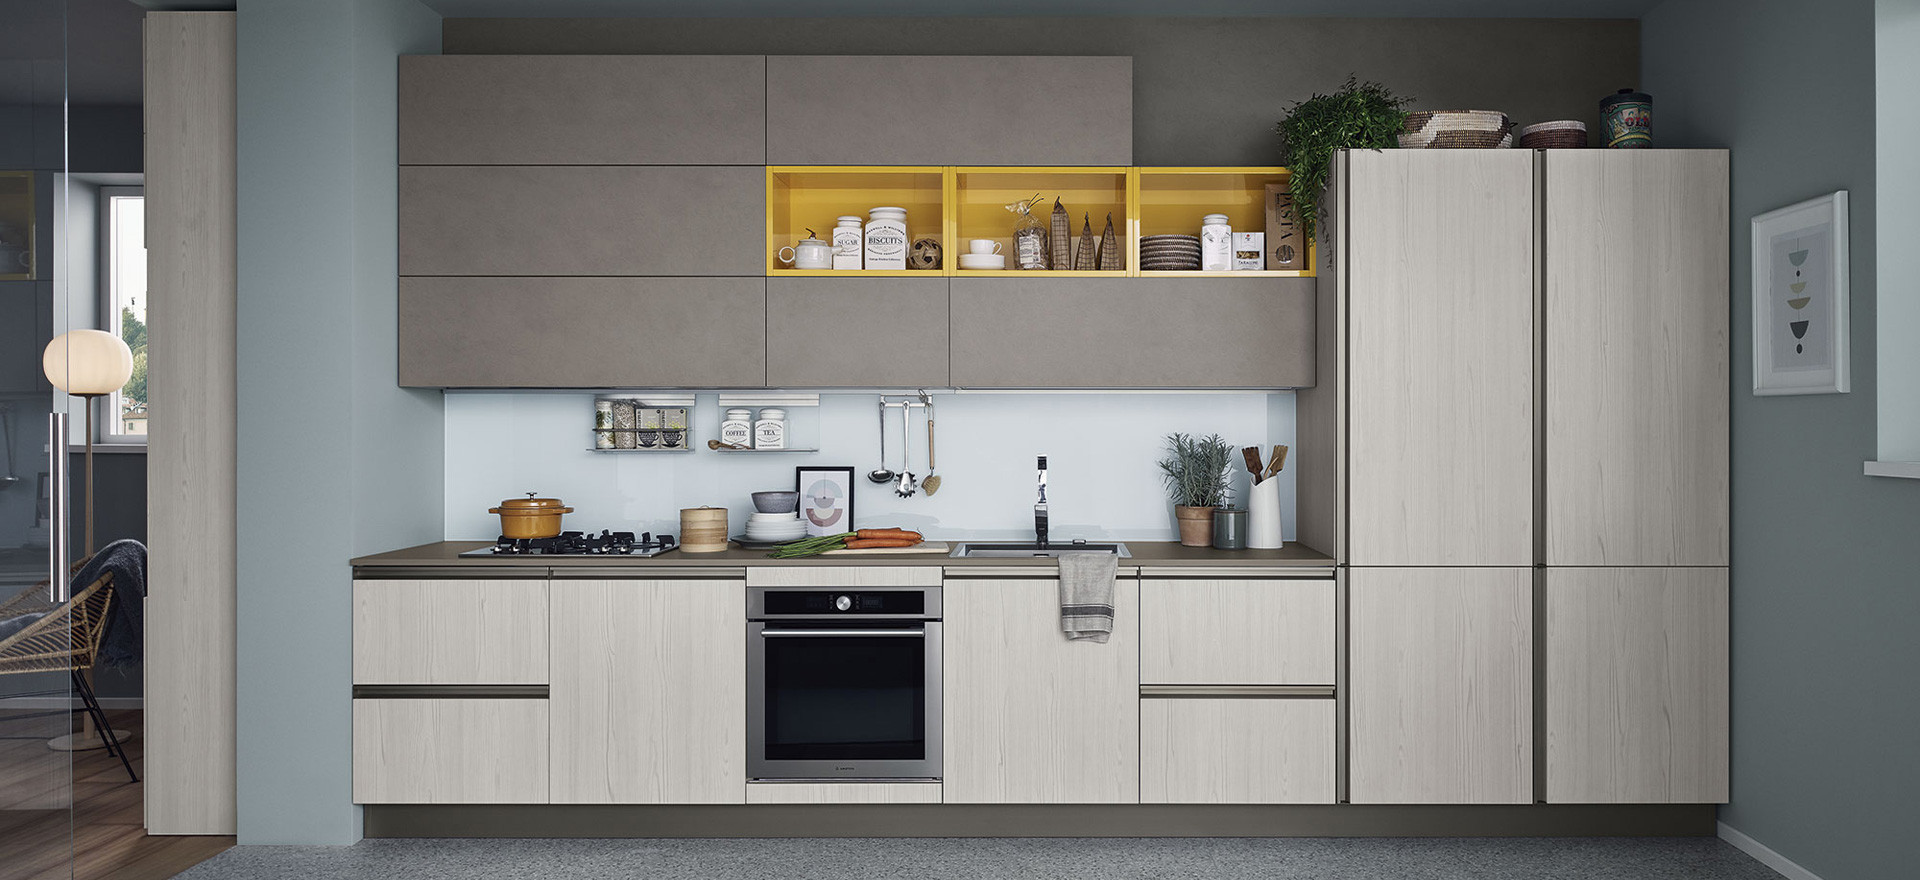 Penisola Cucina In Muratura furniture: kitchens and living rooms | veneta cucine